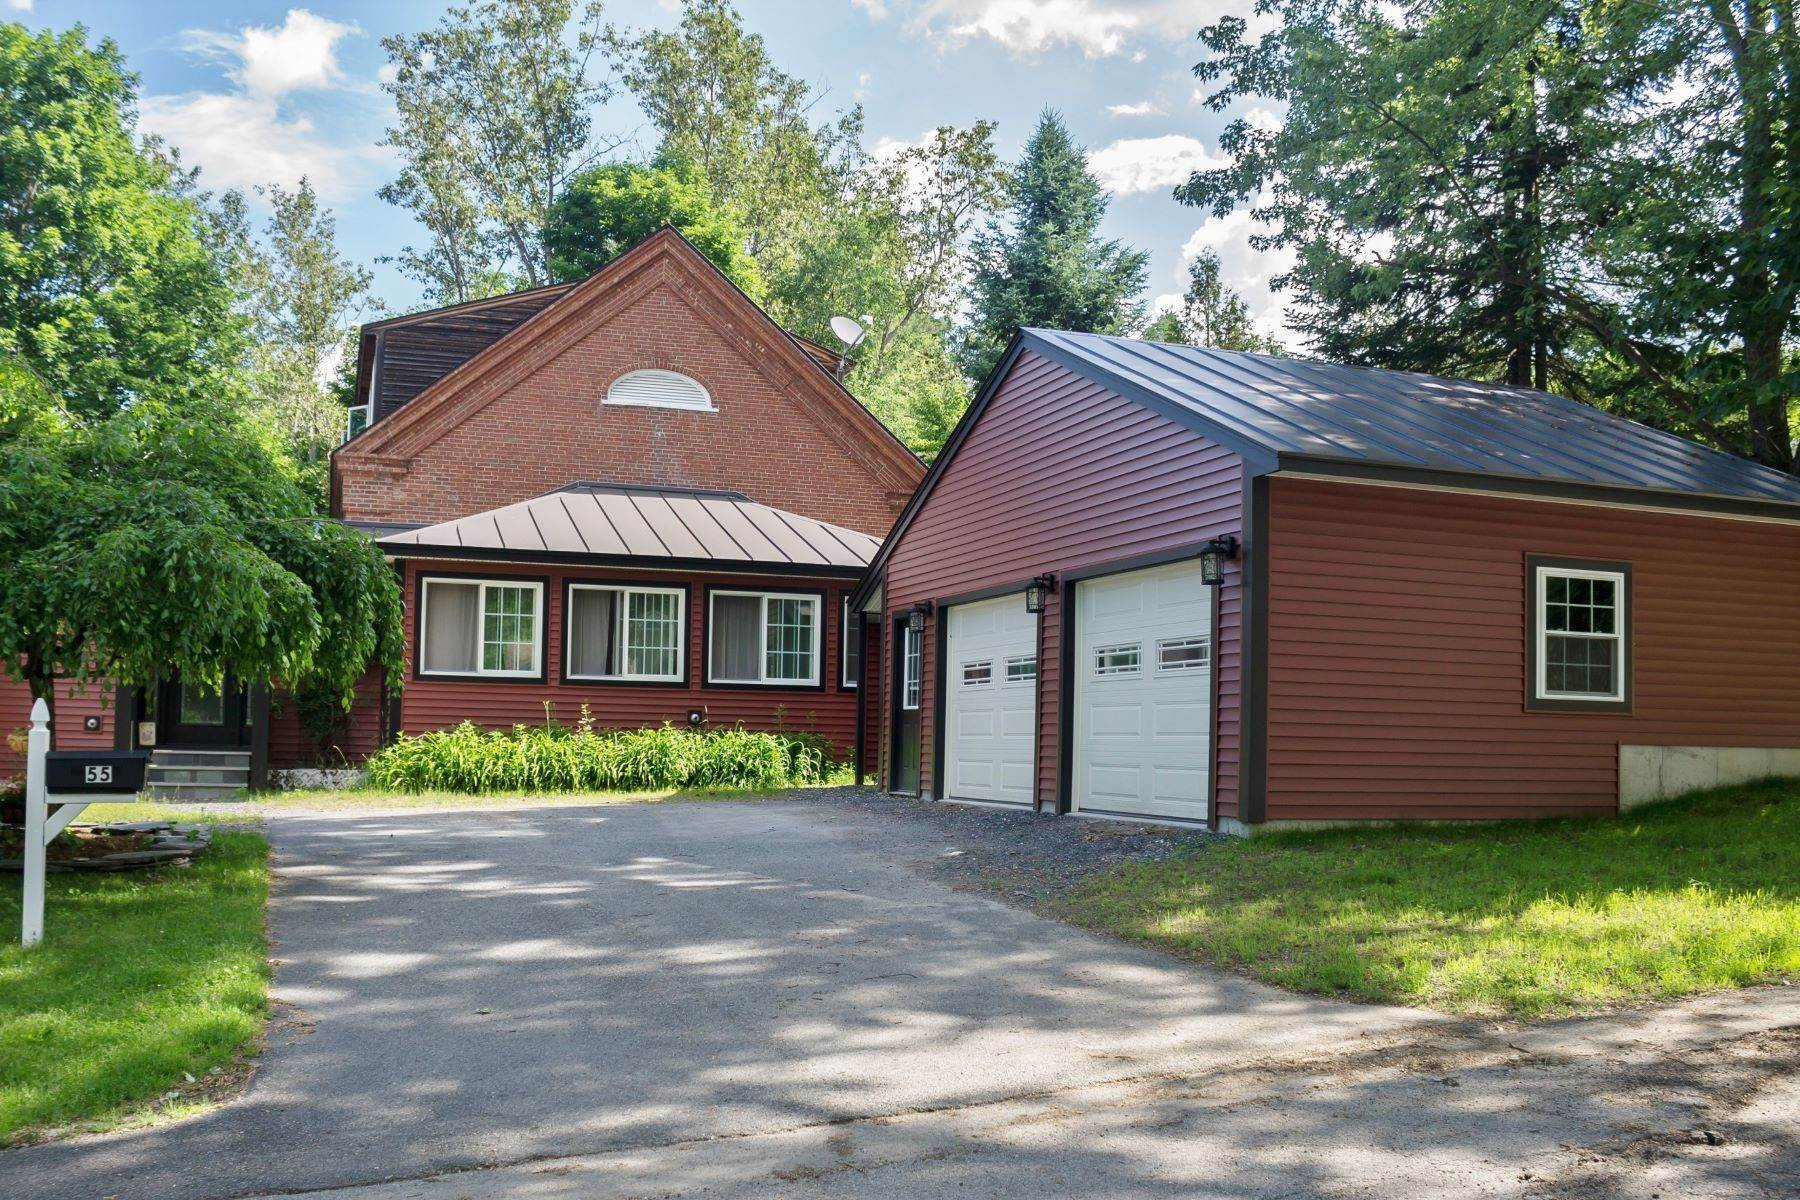 Property for Sale at 55 Stagecoach Road Northfield, Vermont 05663 United States